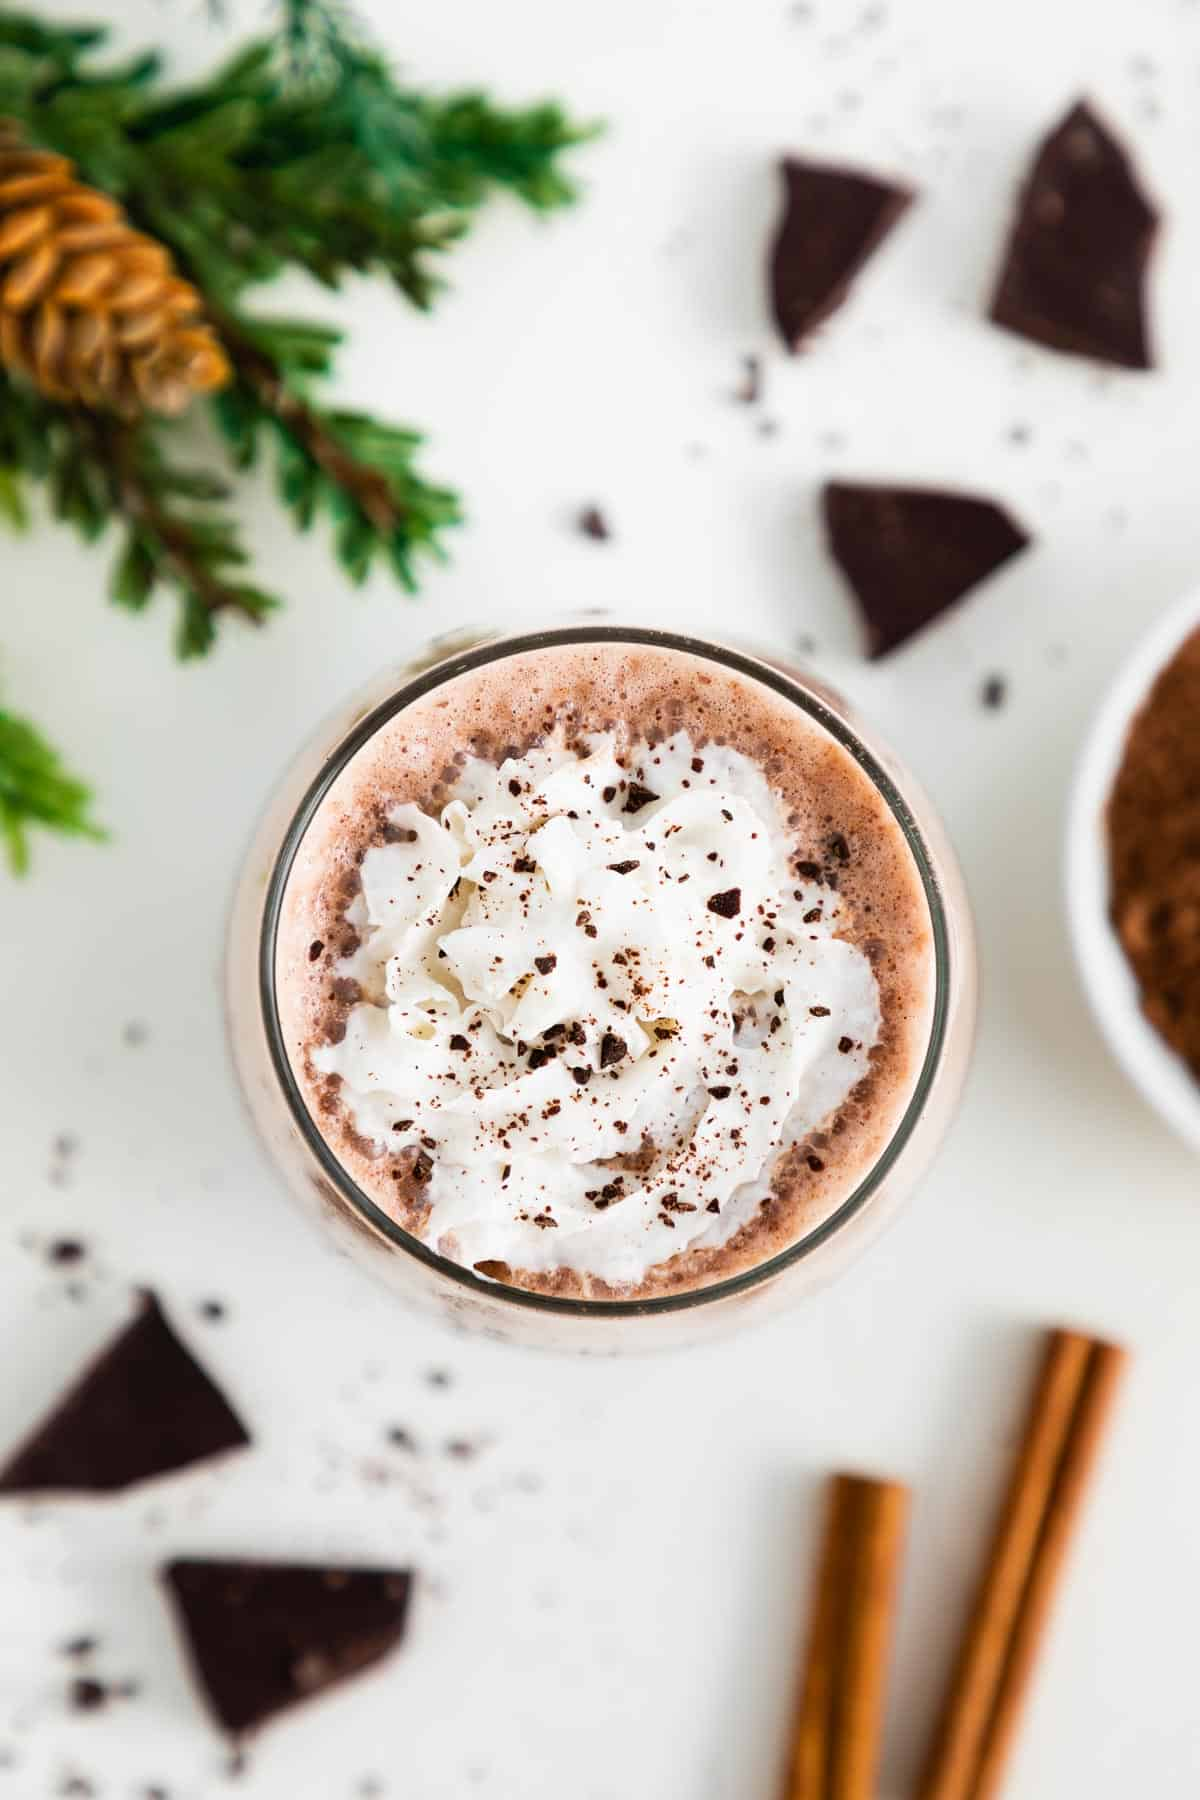 an overhead photo of vegan frozen hot chocolate in a glass with whipped cream, surrounded by pieces of dark chocolate, cinnamon sticks, and a bowl of cocoa powder